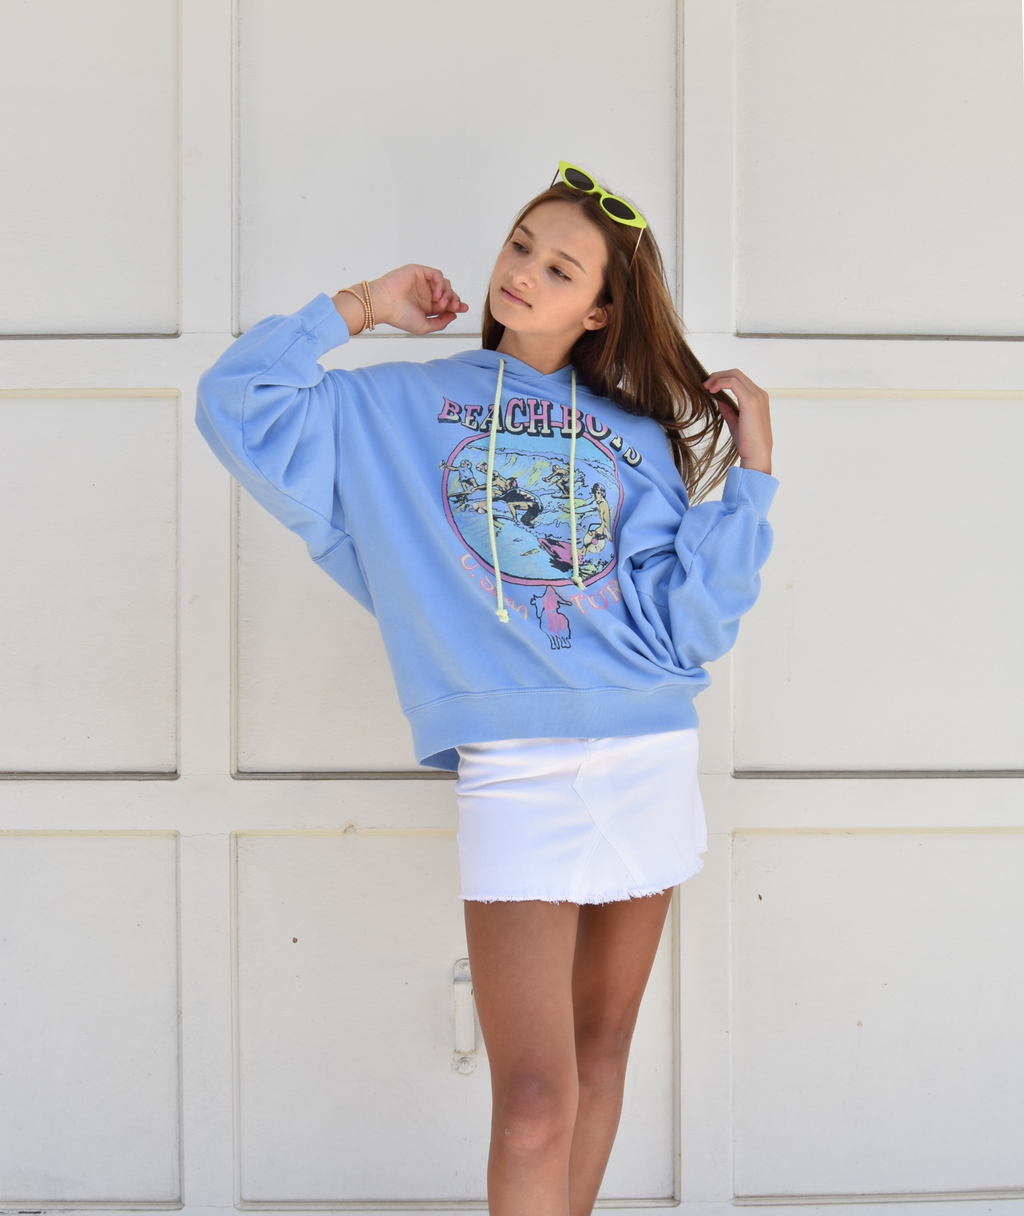 Daydreamer Women Beach Boys US '80 Tour Periwinkle Oversized Hoodie